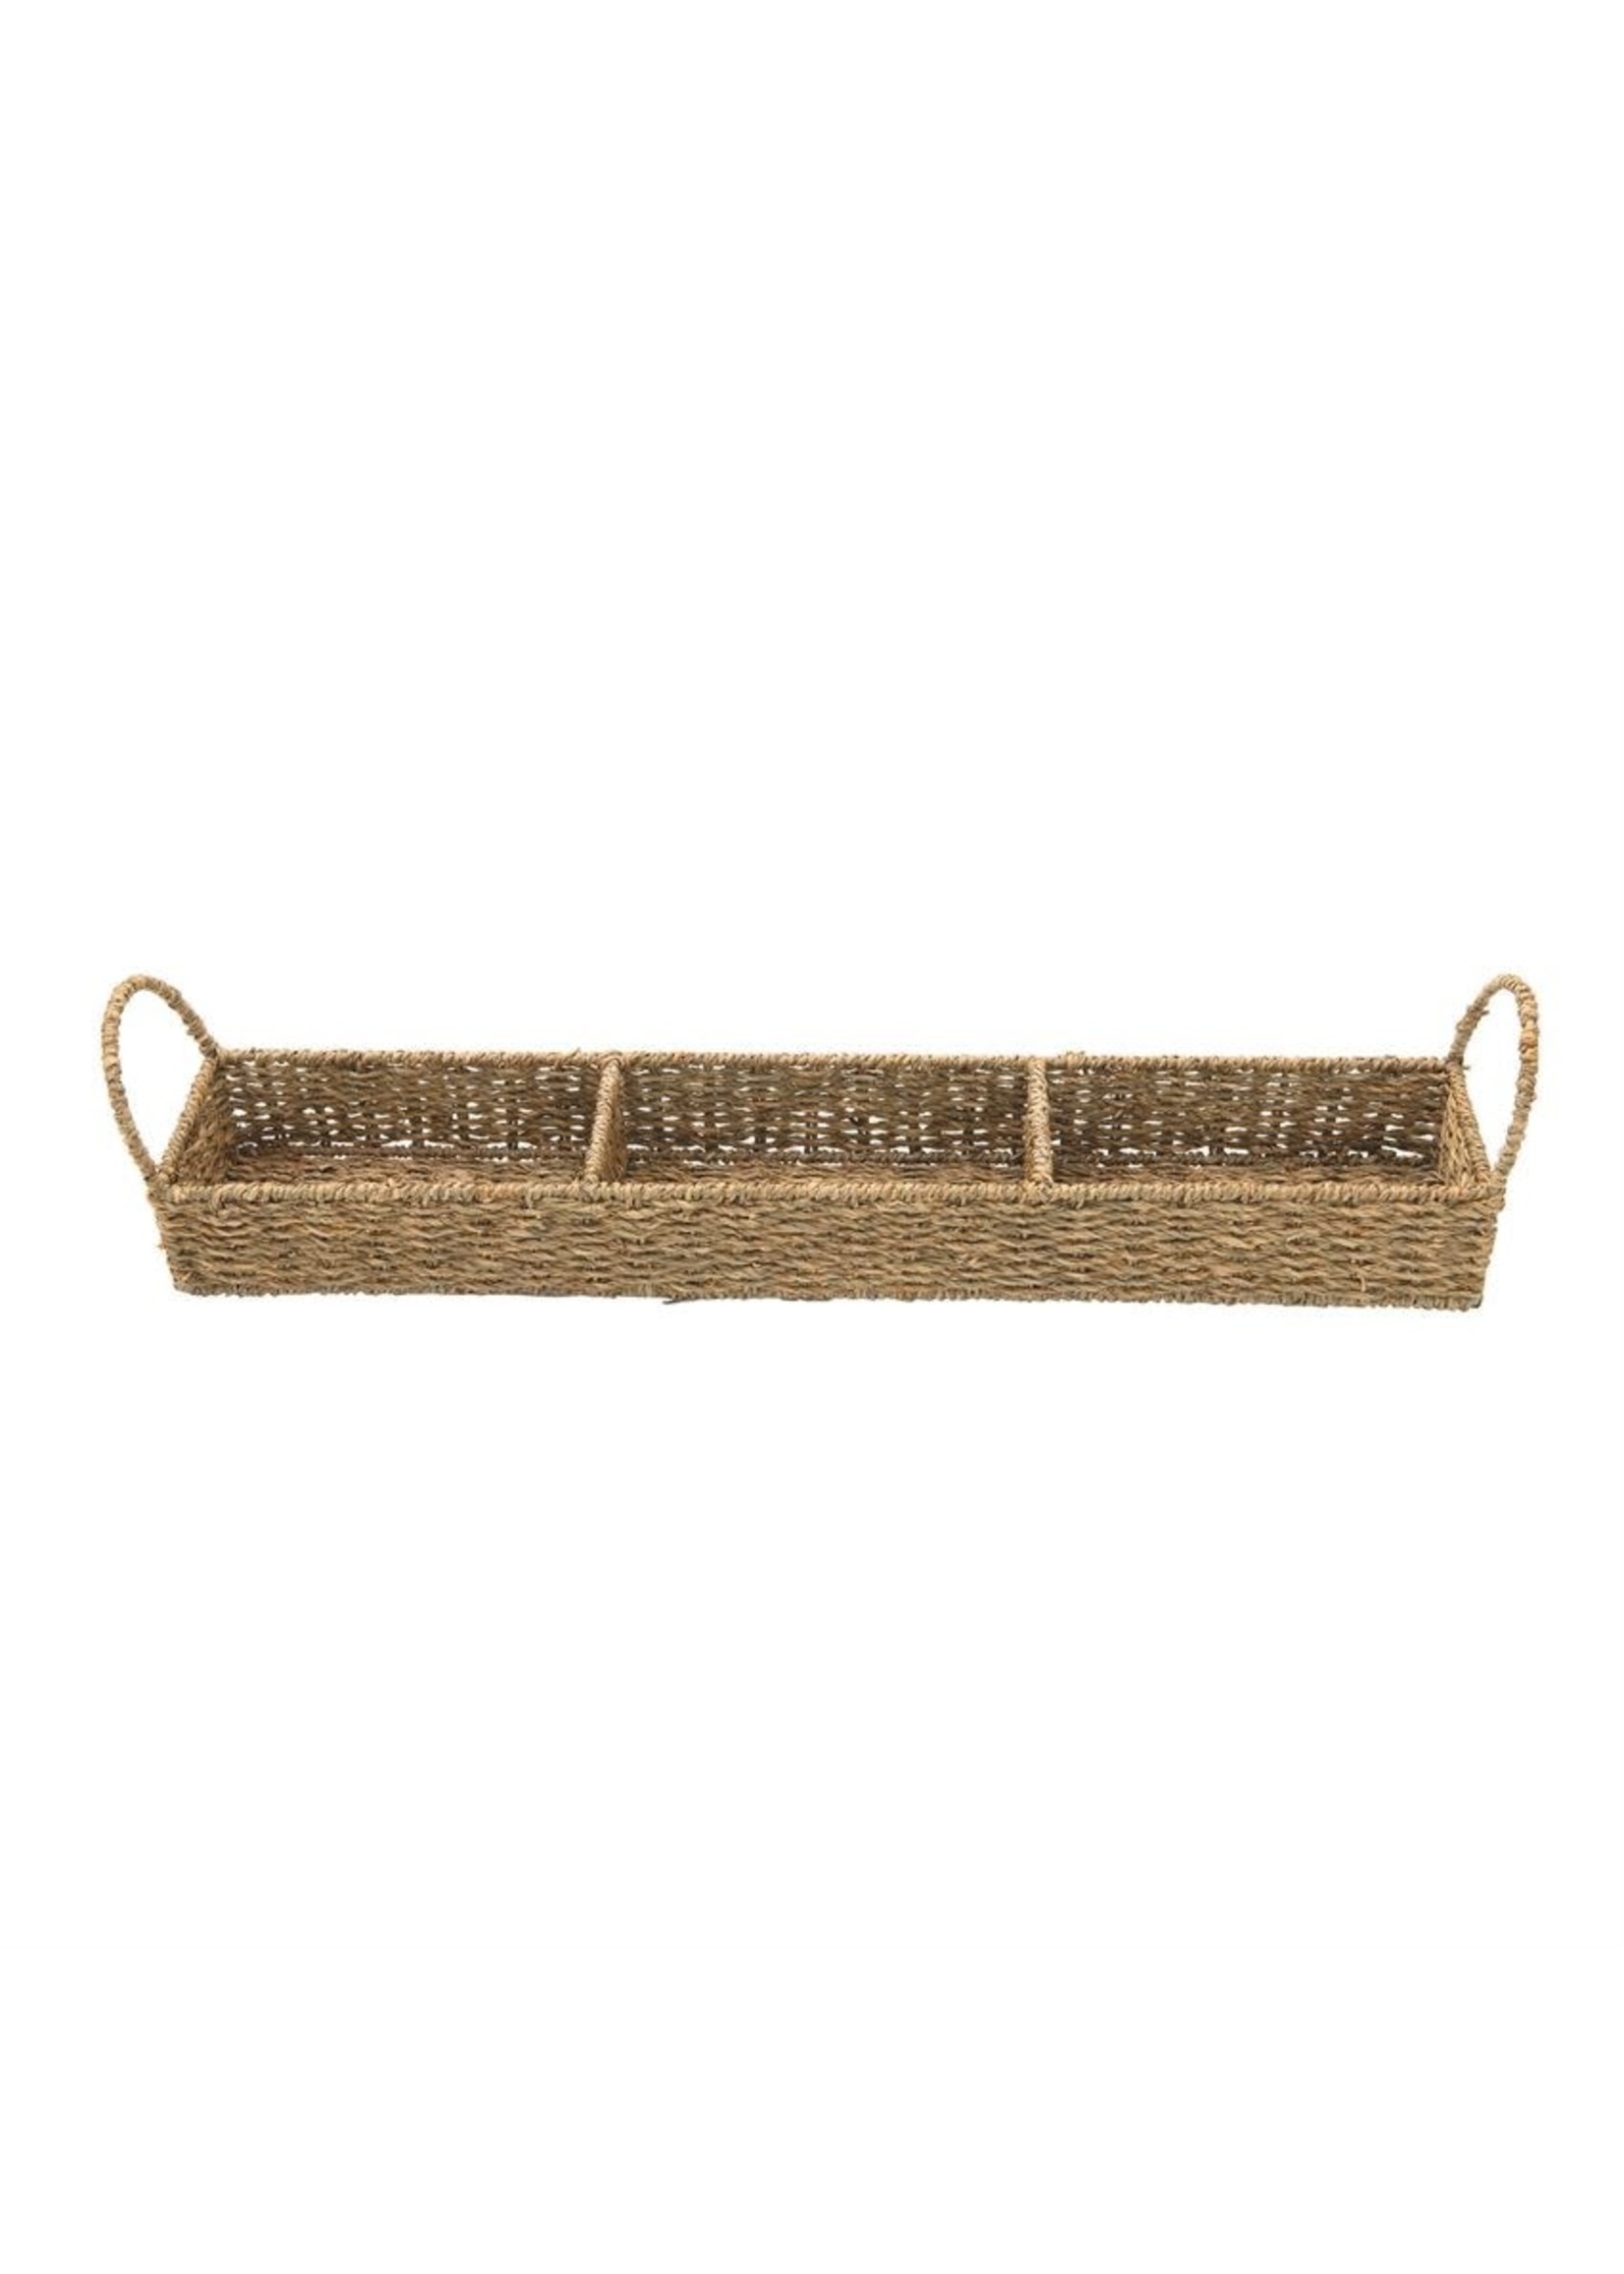 SEAGRASS TRAY W/ 3 SECTIONS